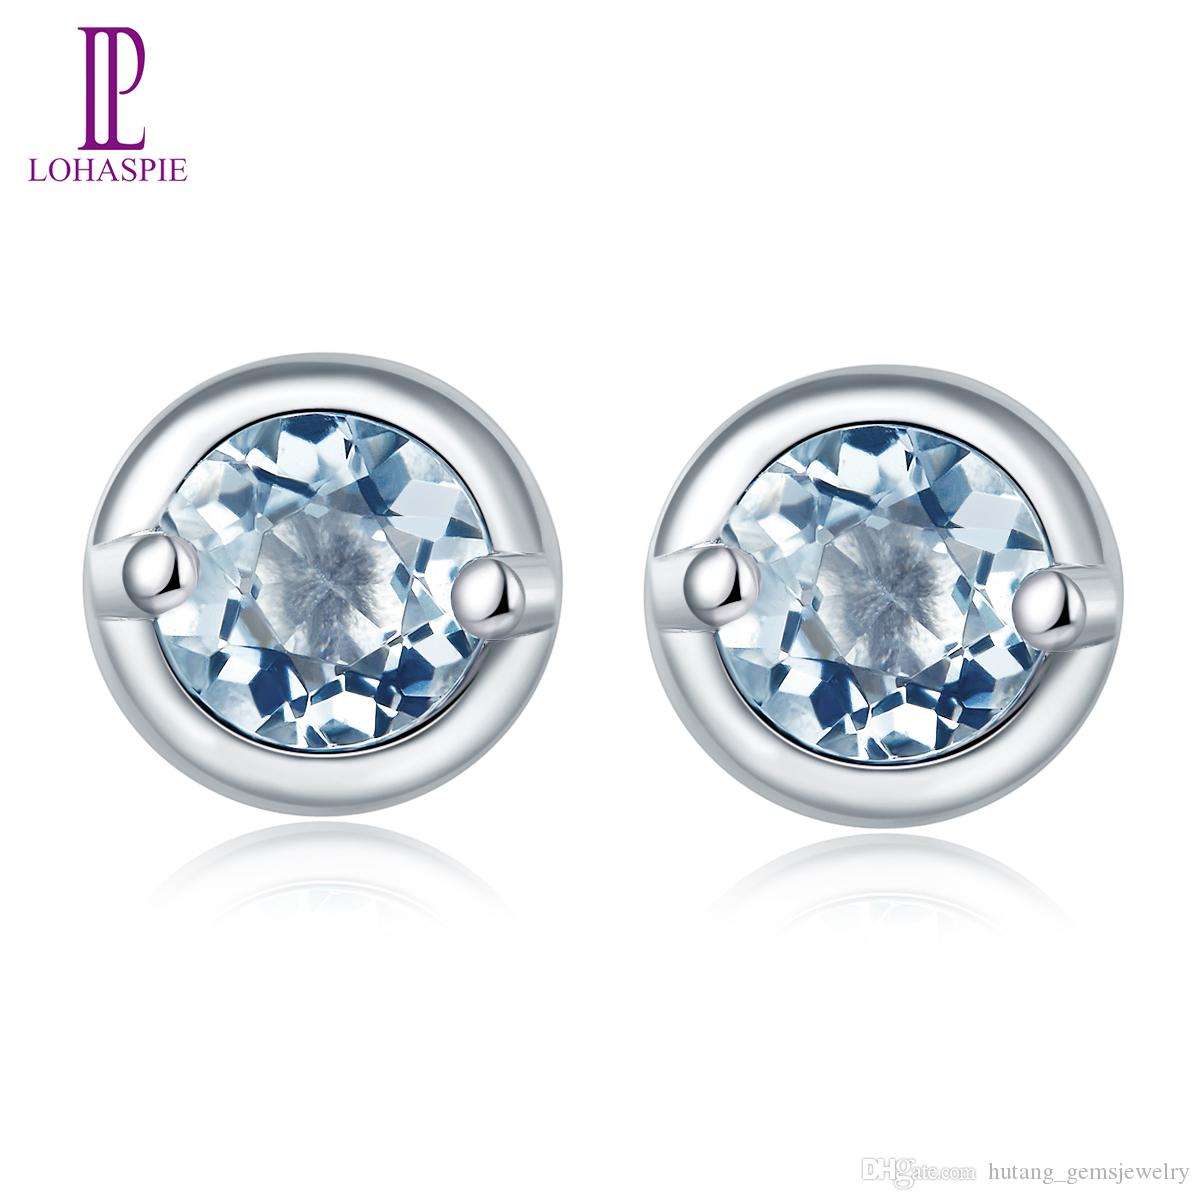 Natural Gemstone 4mm Round Aquamarine Stud Earrings for Women Solid 925 Sterling Silver Fine Fashion Jewelry Hot Sale Elegant Gift Wholesale